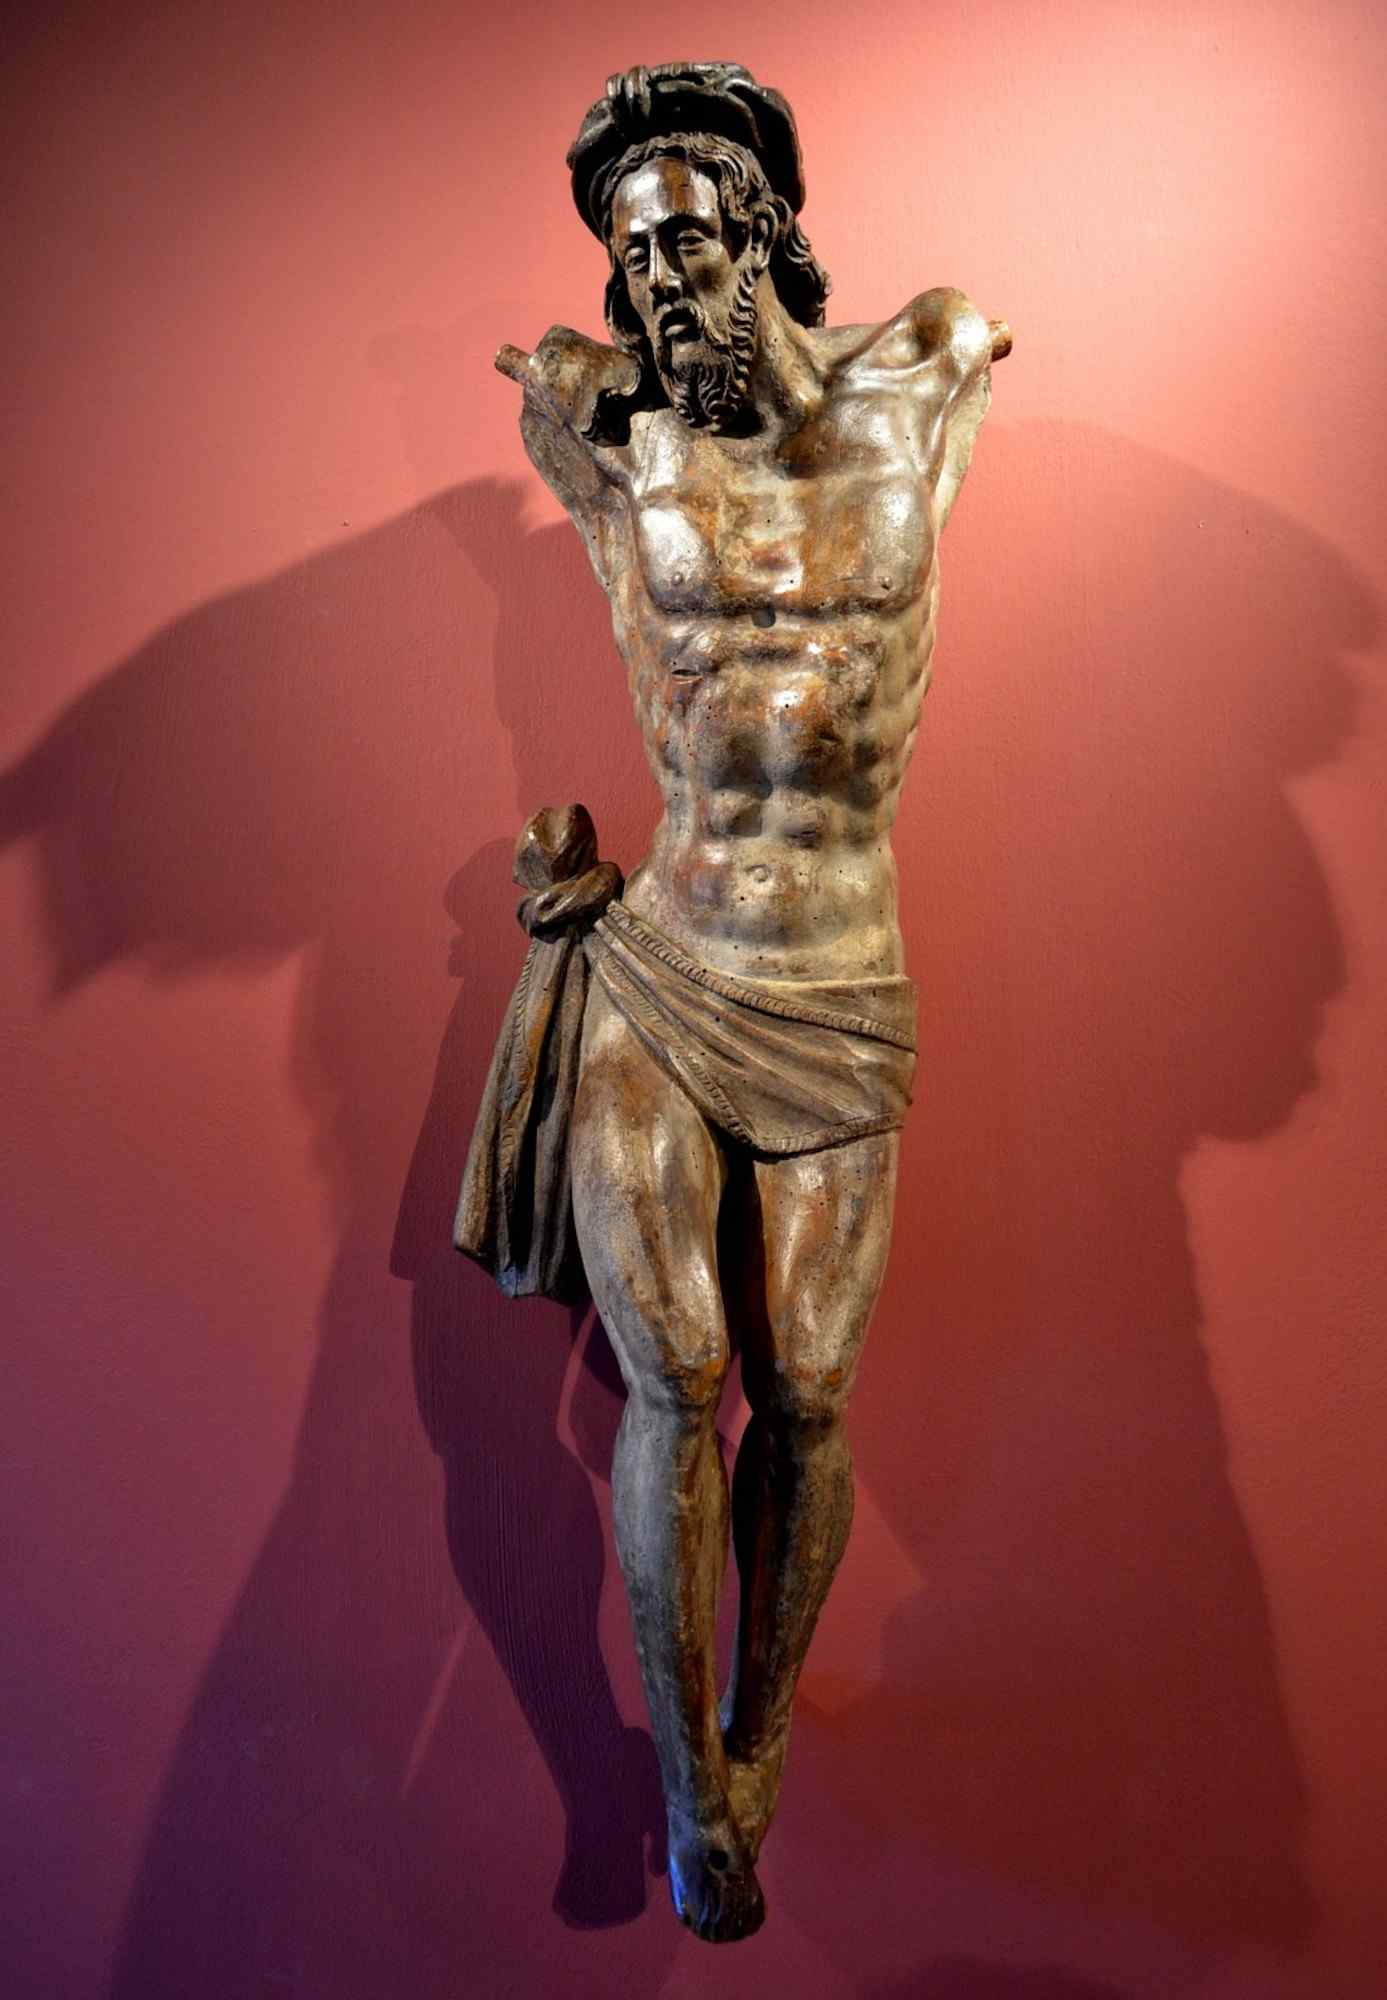 Important wooden sculpture, German sculptor of the 1500s